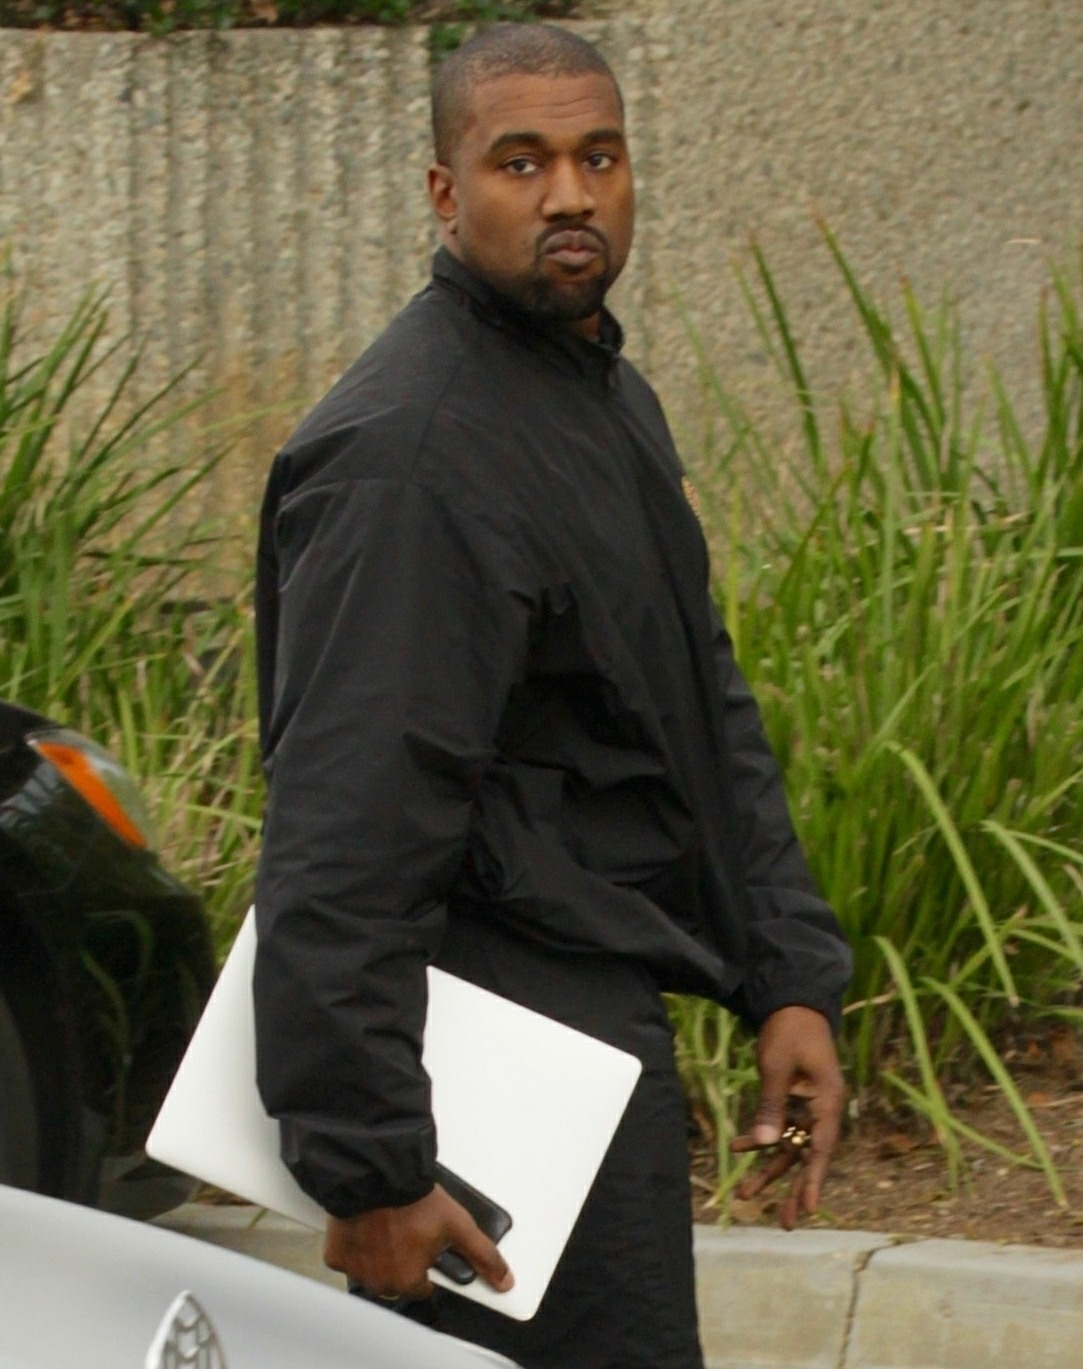 Kanye West heads to the office after the birth of his third child in Calabasas, CA